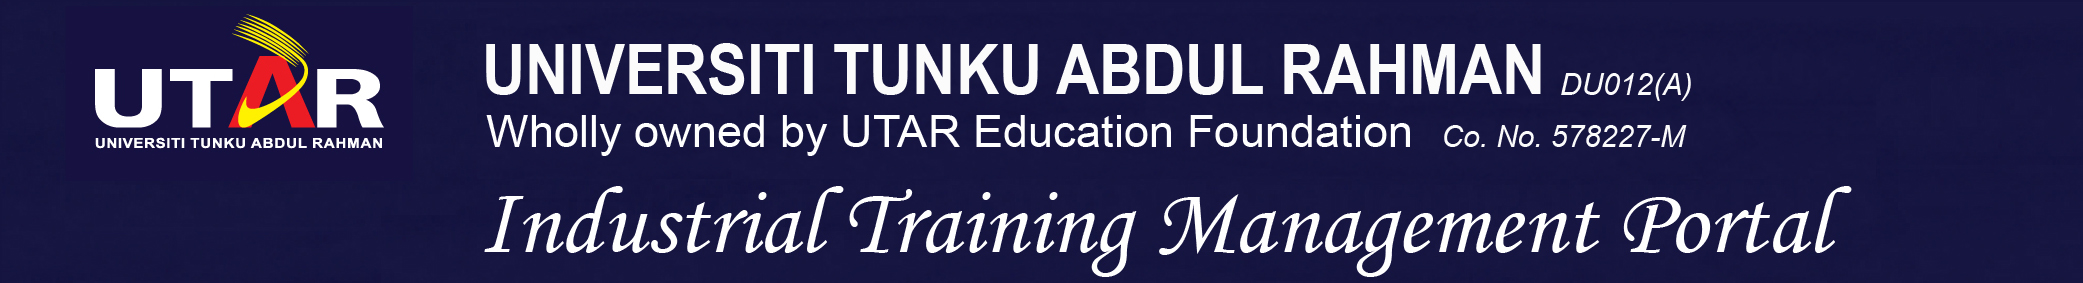 Universiti Tunku Abdul Rahman Industrial Training Management Portal